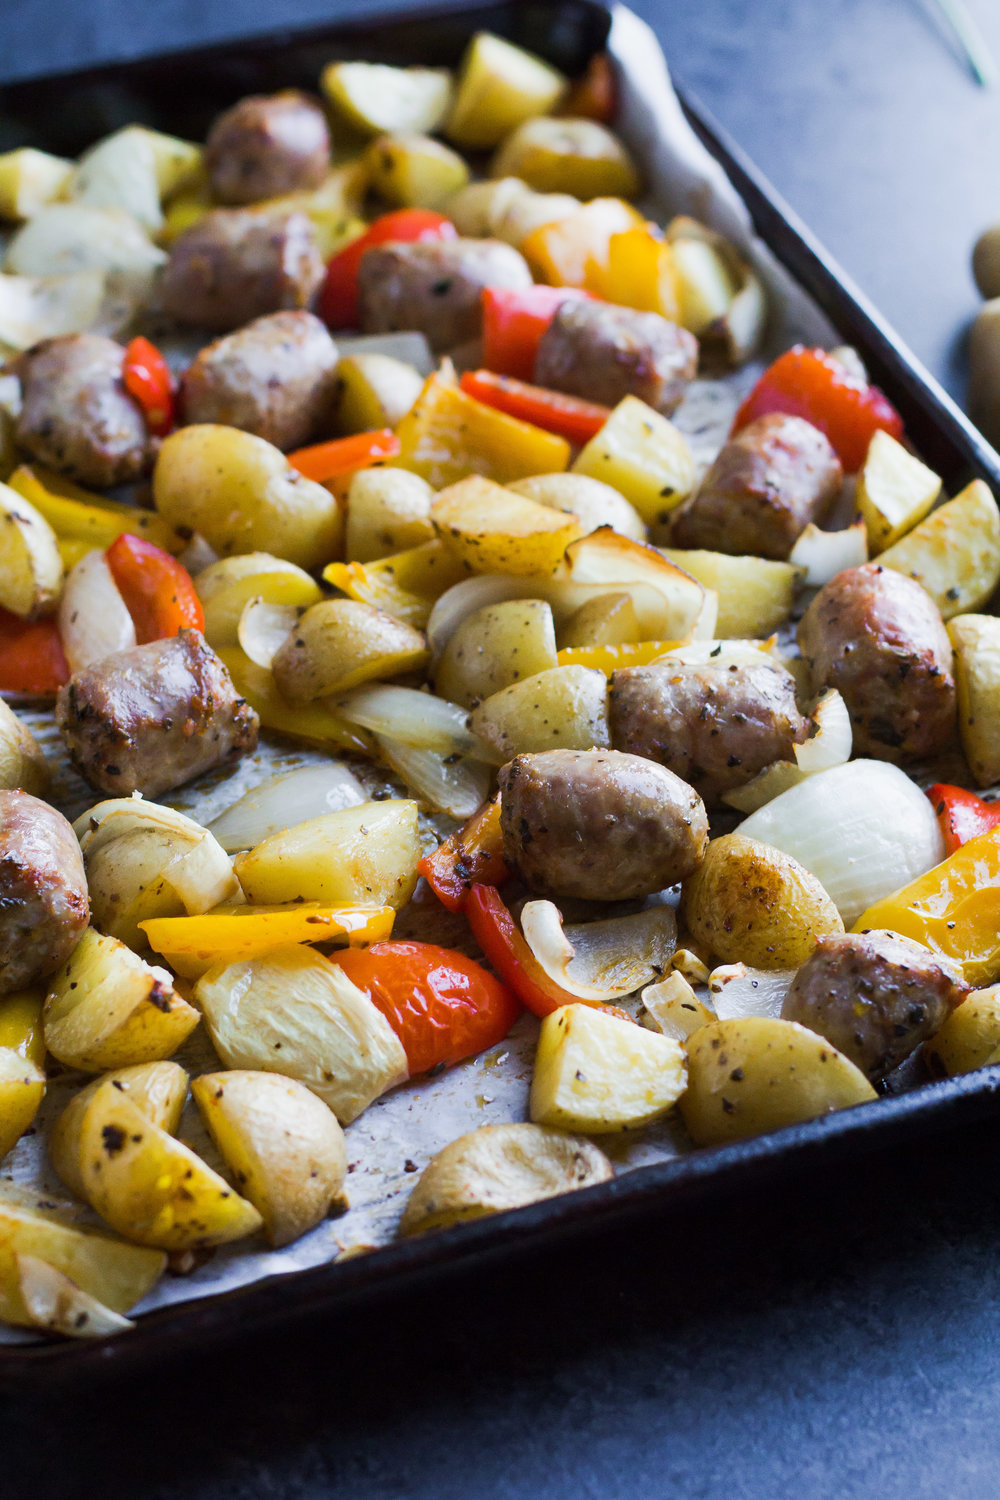 Sheet Pan Sausage, Peppers + Potatoes - Sarah J. Hauser